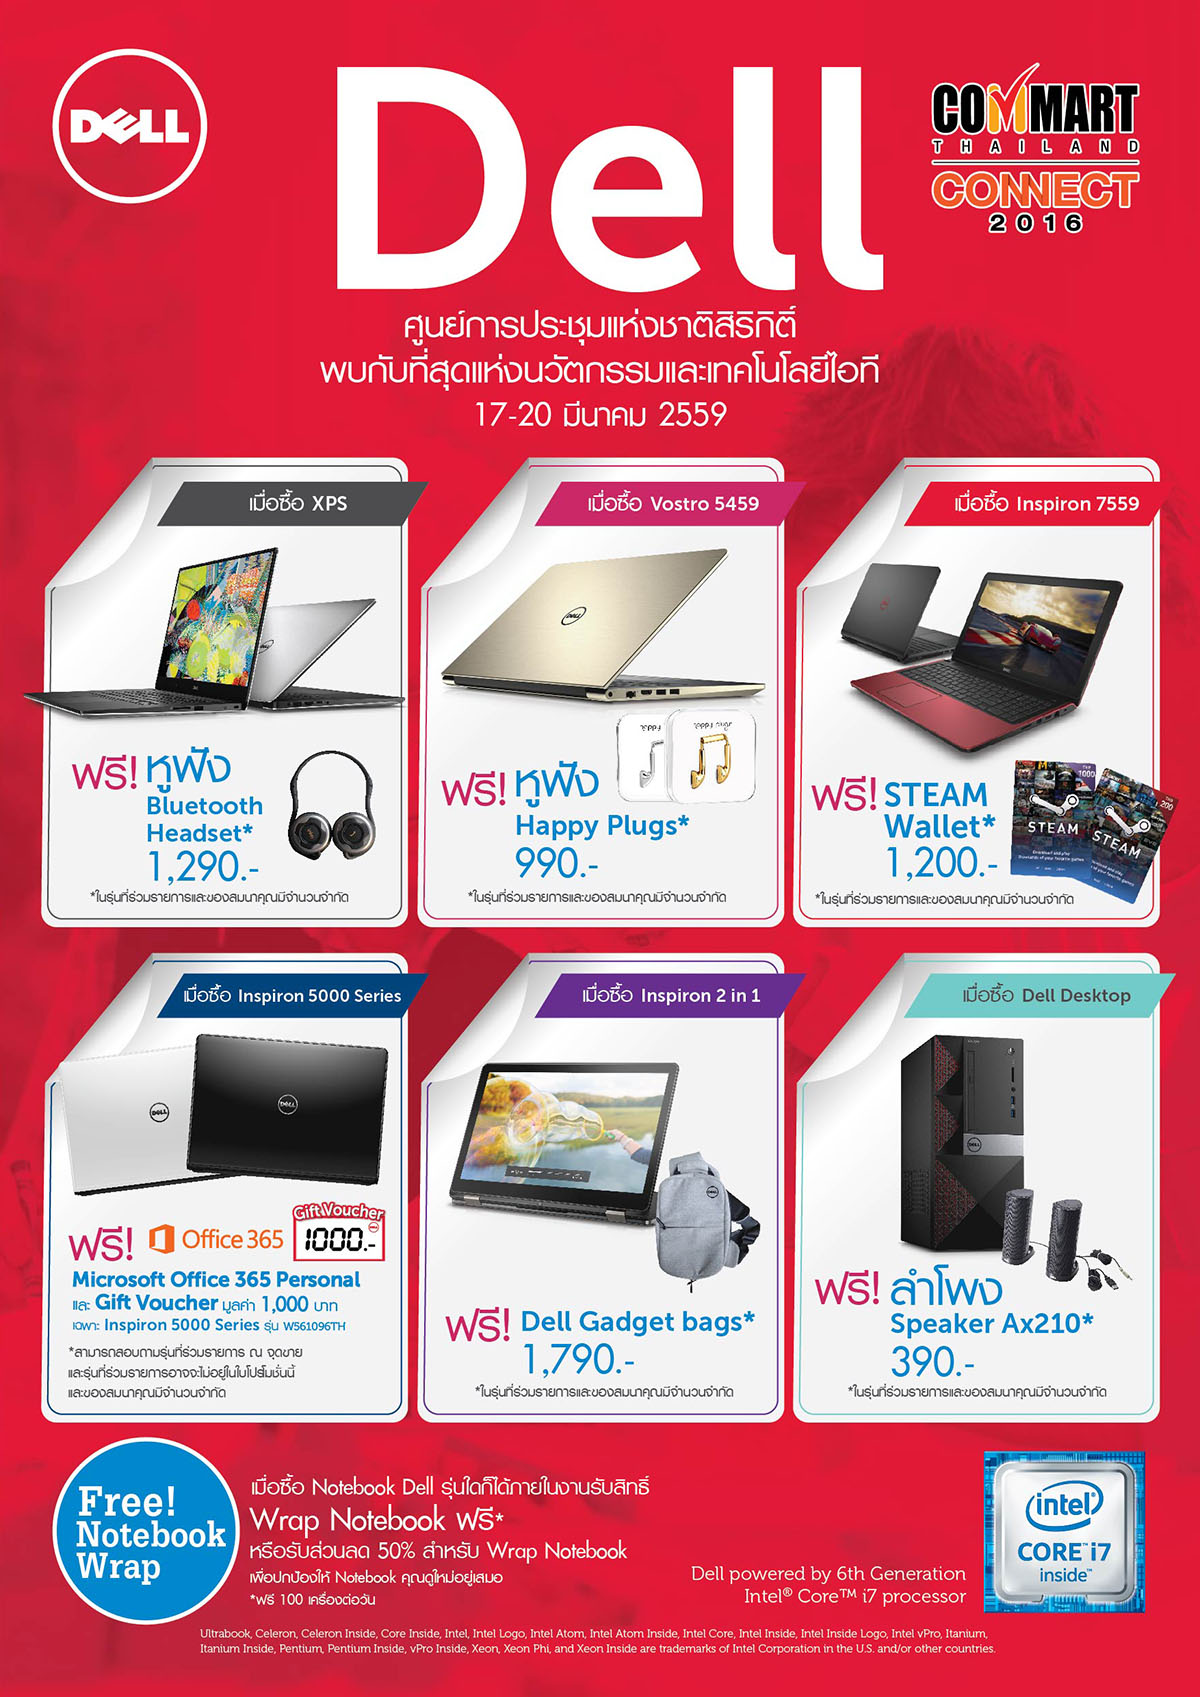 Dell Commart MAR2016 out A3 6